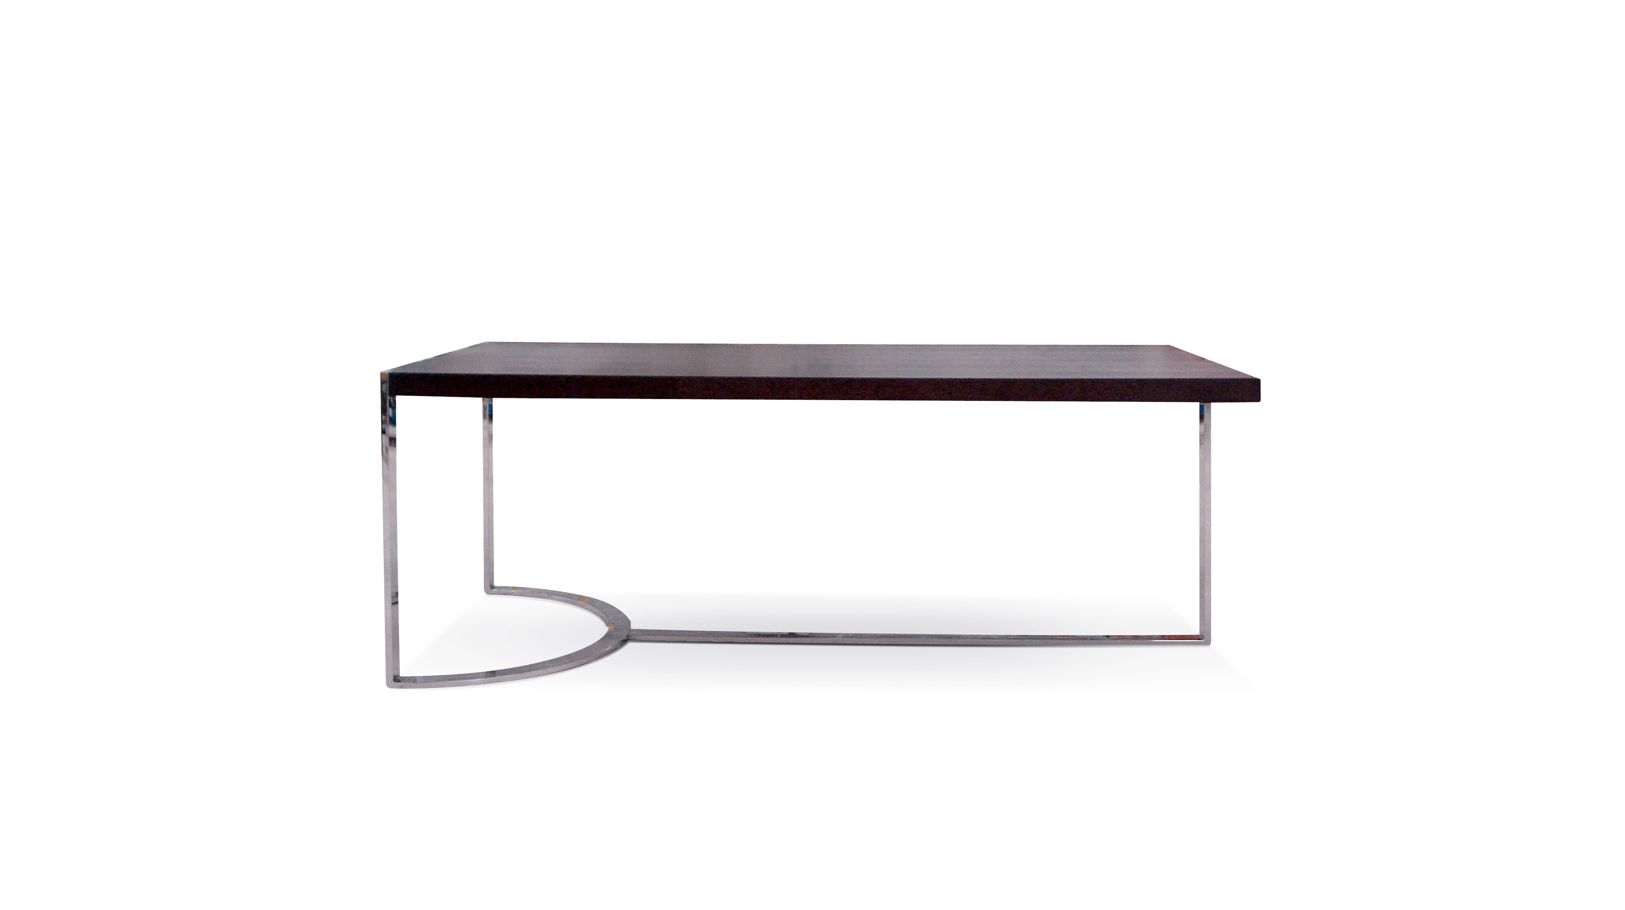 Diapason bed with nightstands roche bobois - La roche bobois table ...